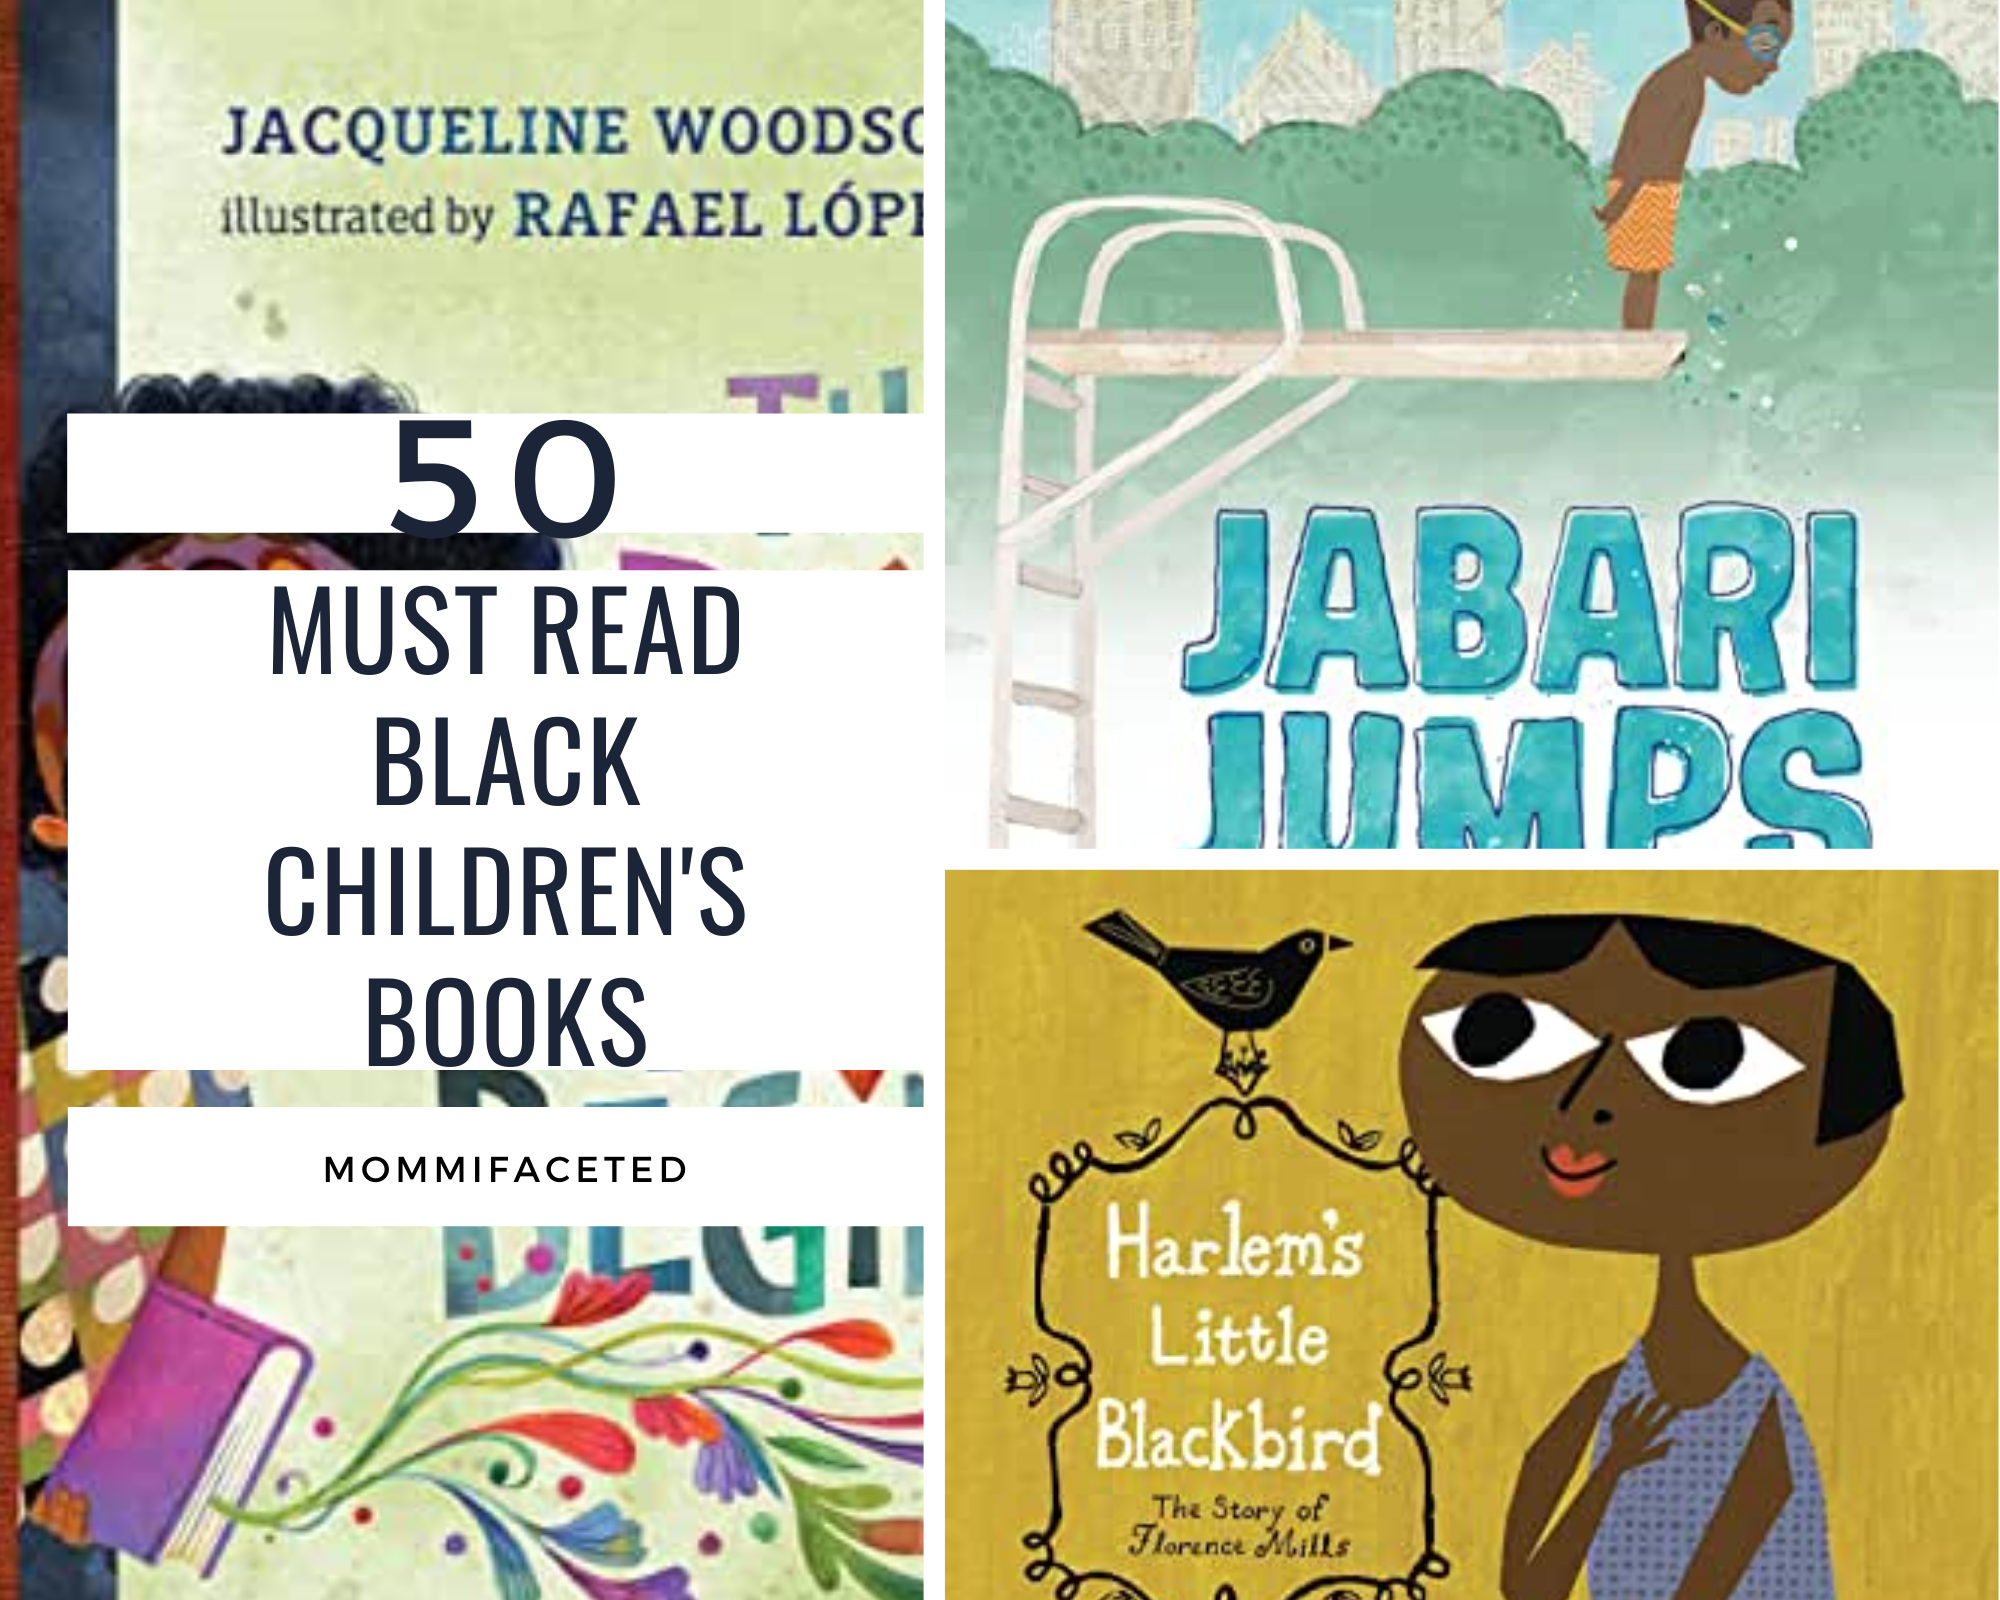 black childrens books